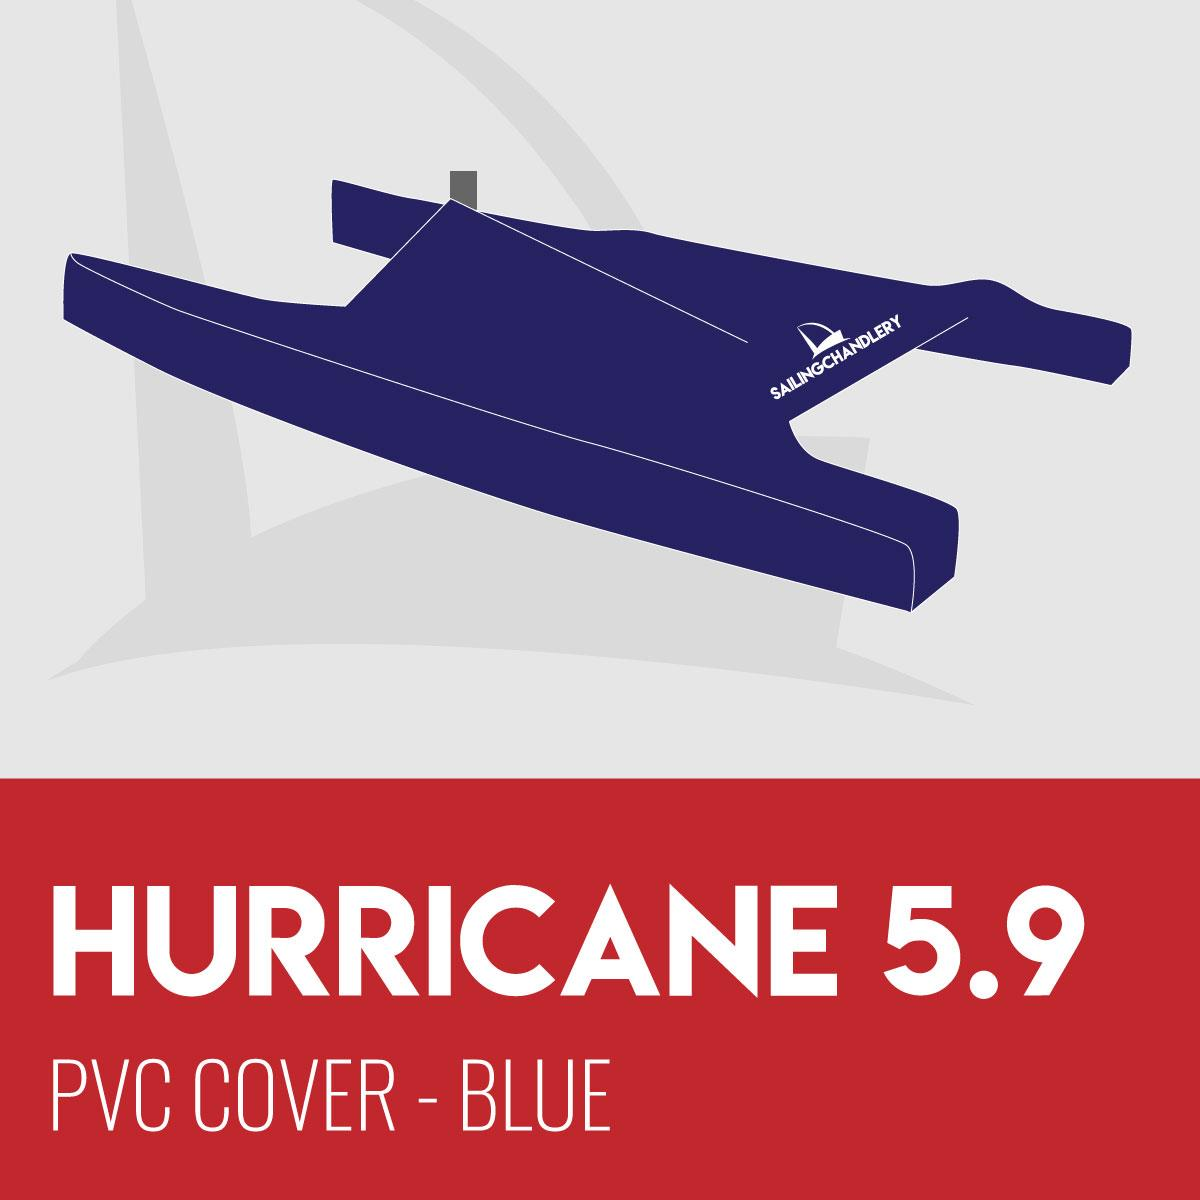 Hurricane 5.9 Boat Cover - PVC